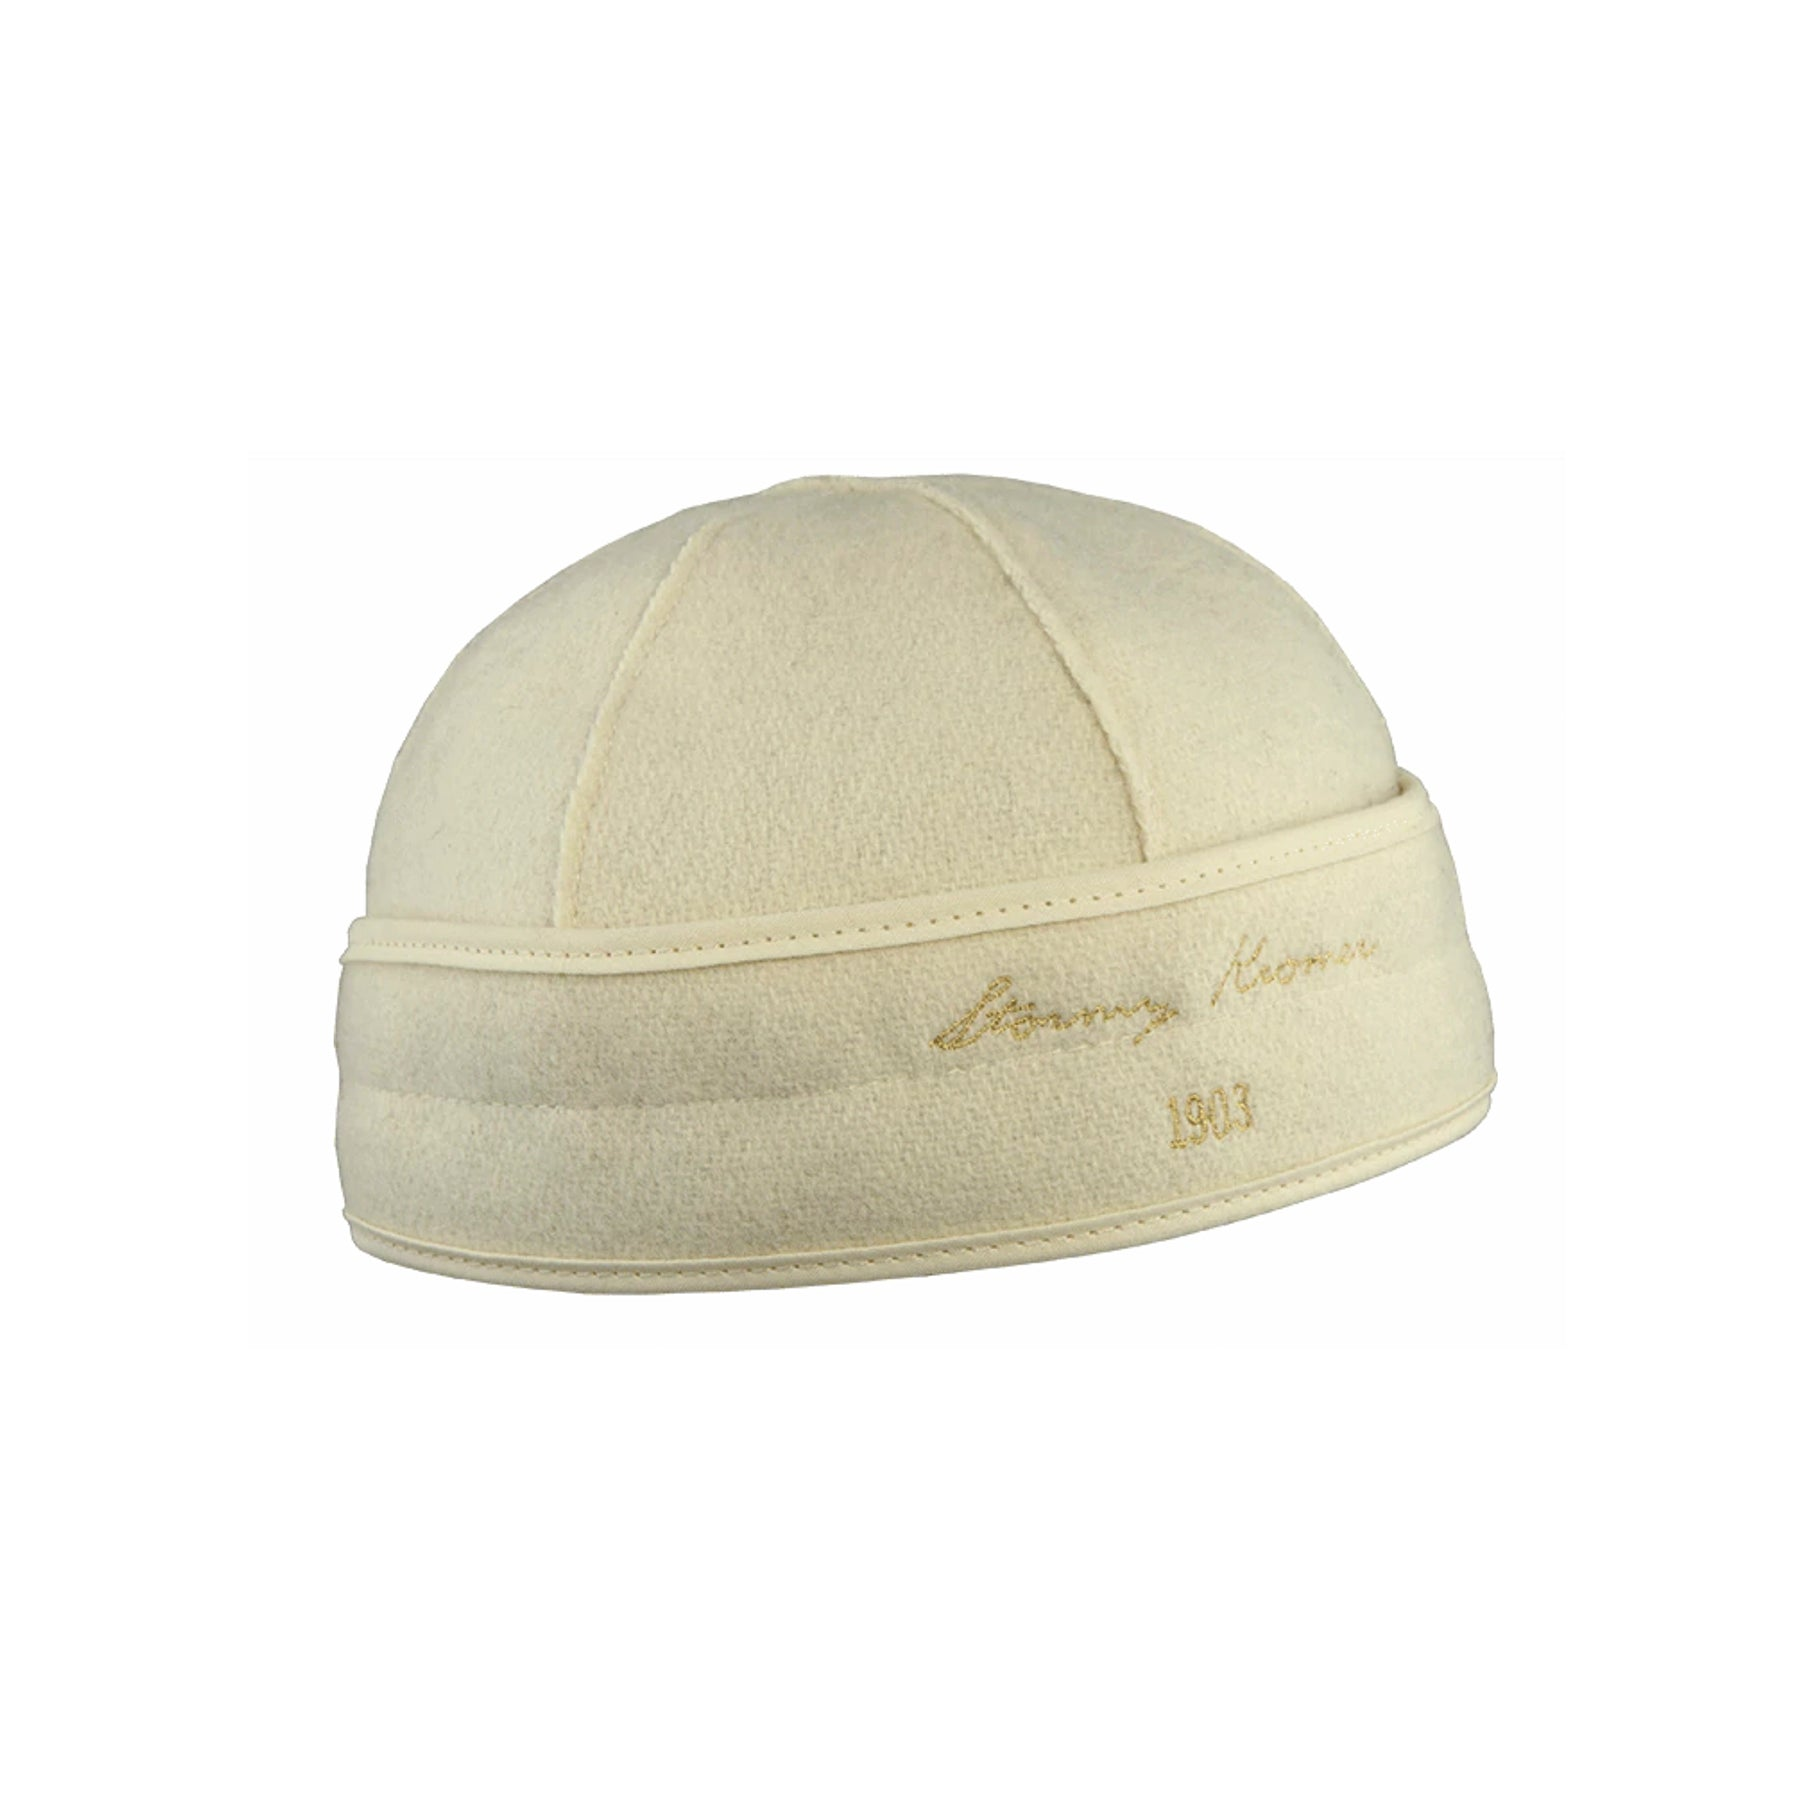 Stormy Kromer Brimless Cap - Winter White